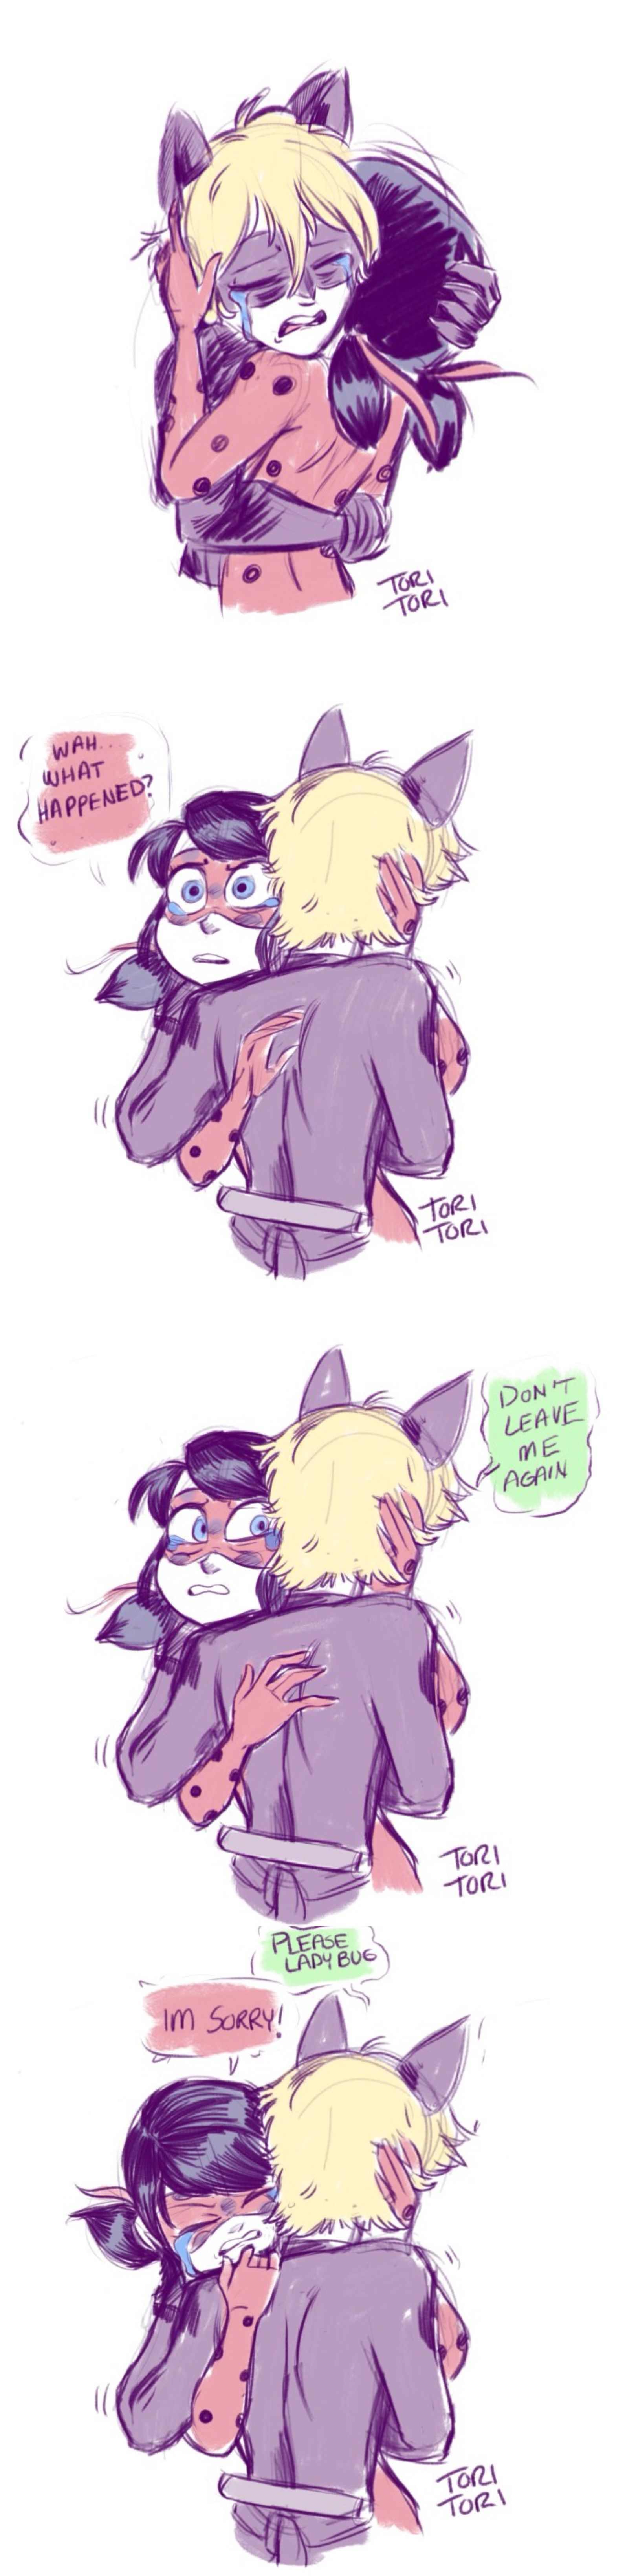 If something happened, and Ladybug got separated from Chat Noir, supposedly for good.